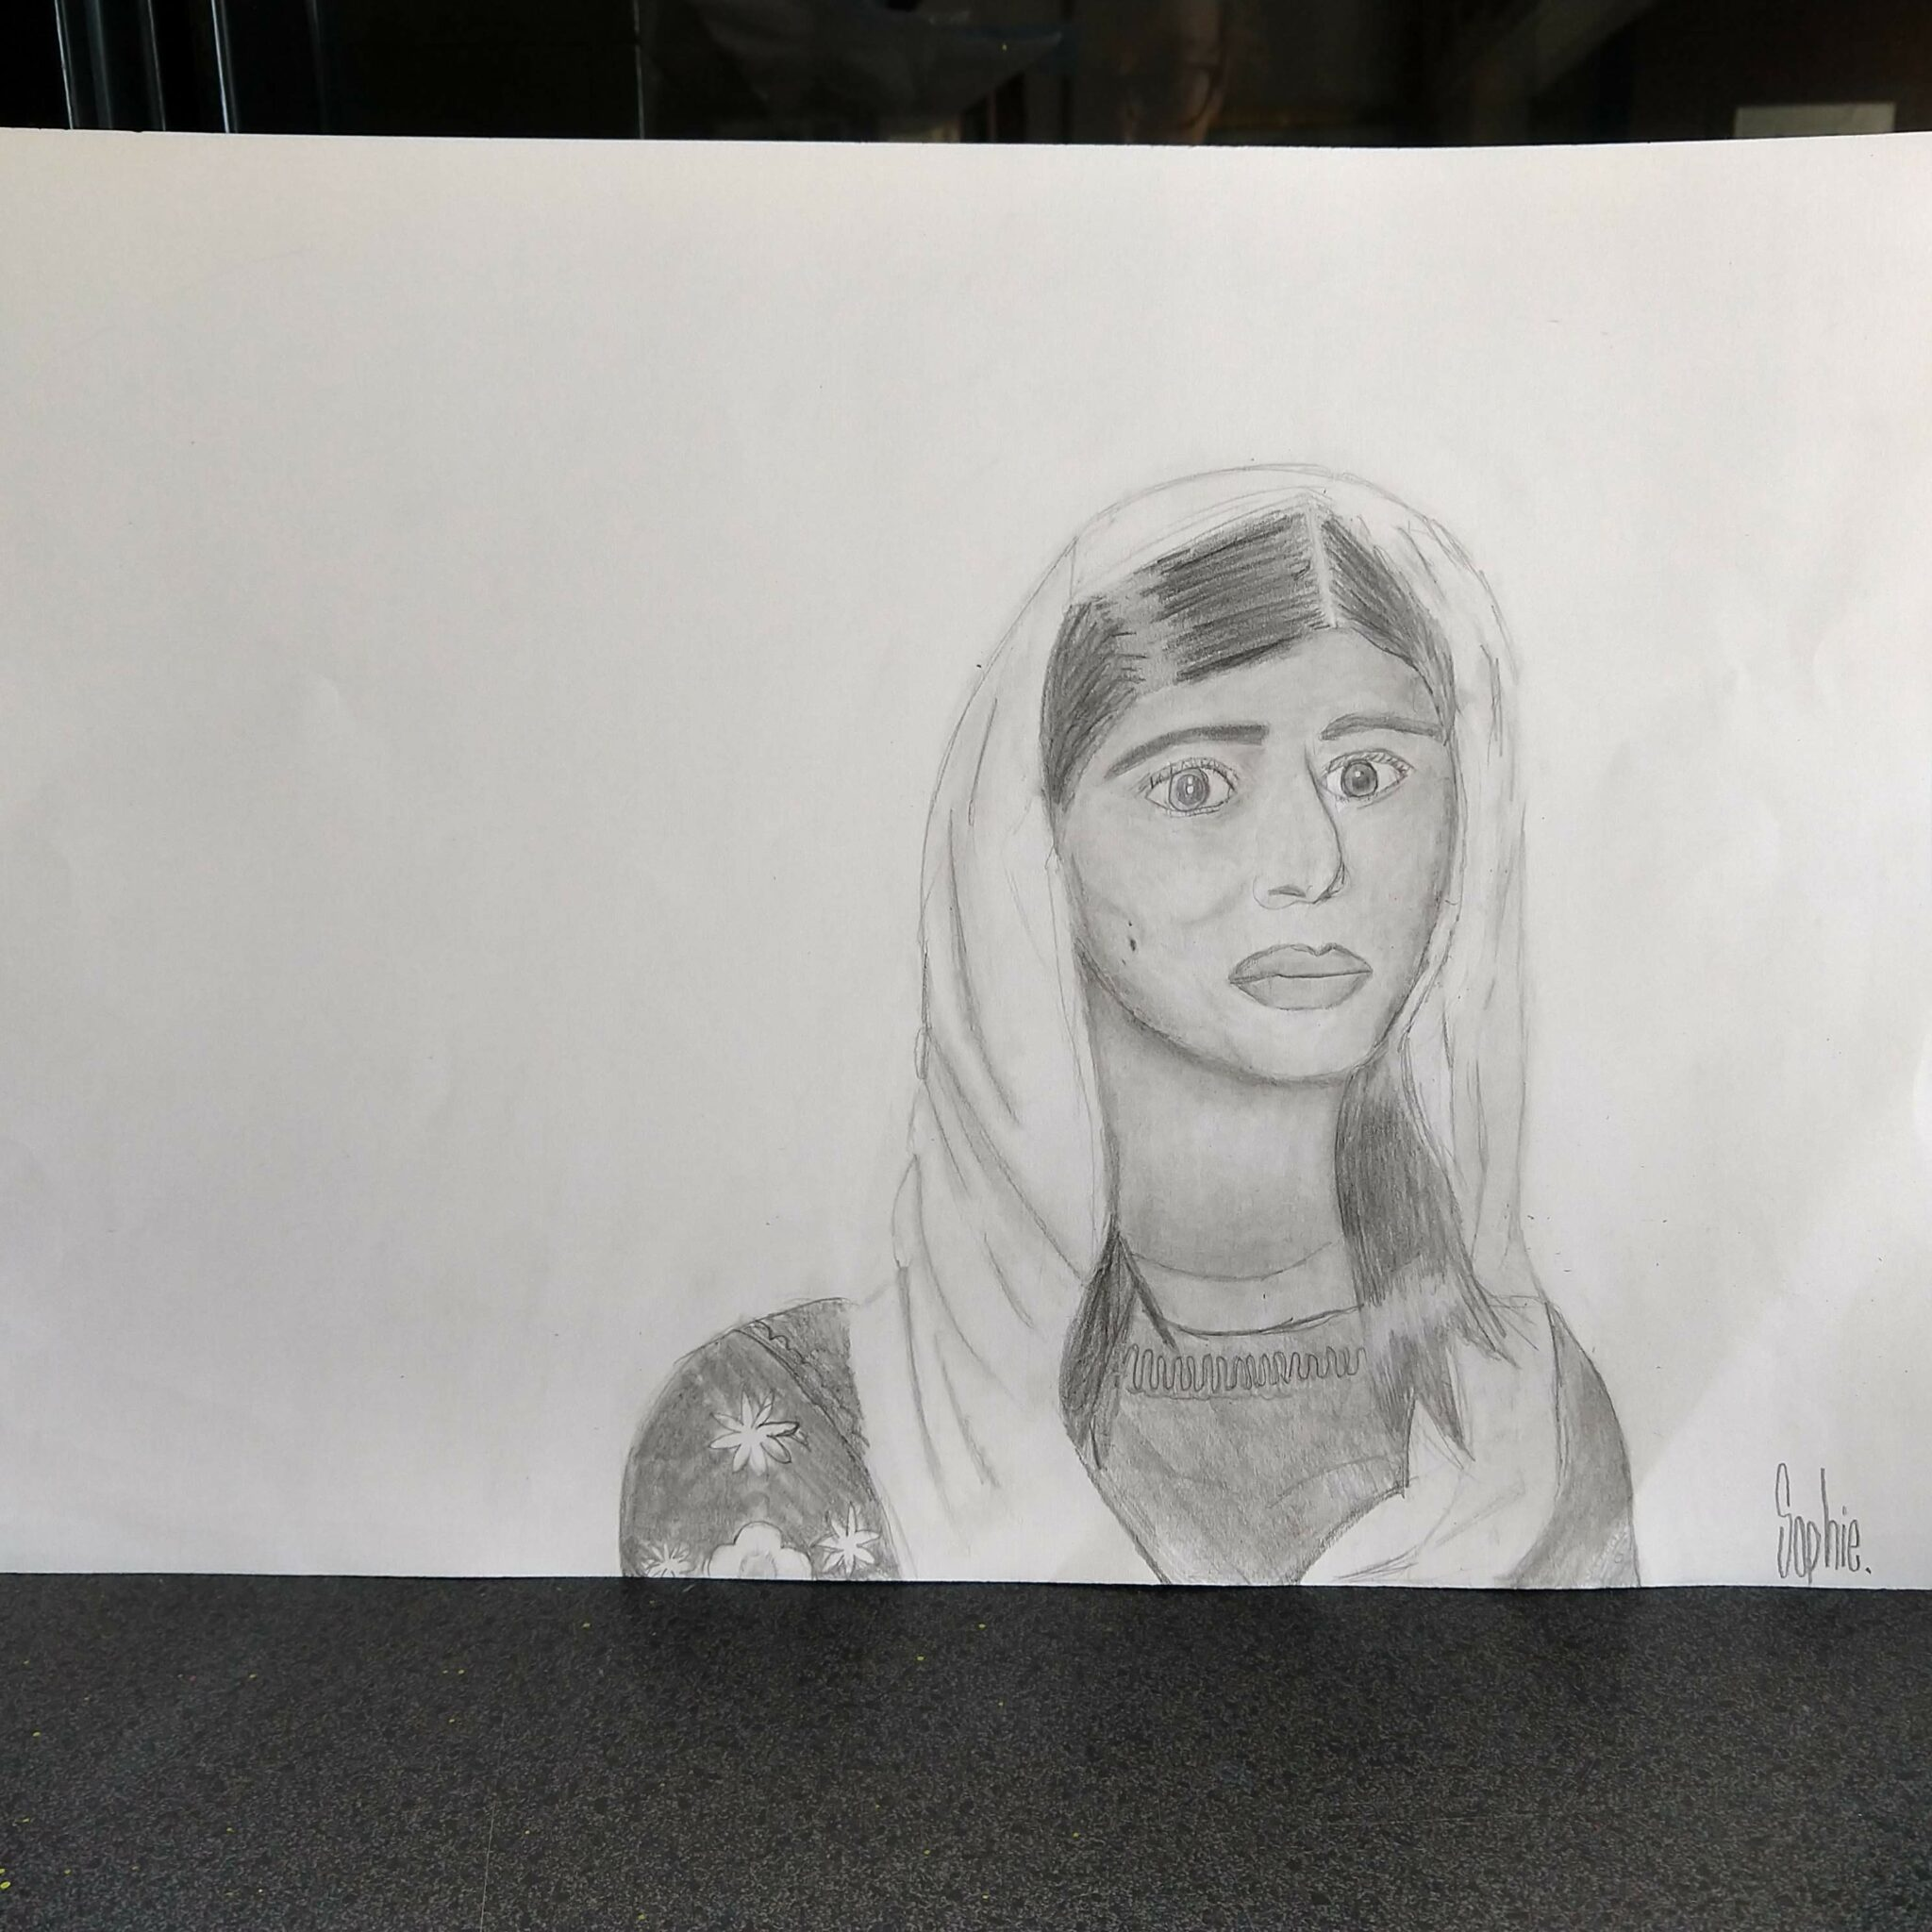 pencil drawing of a person